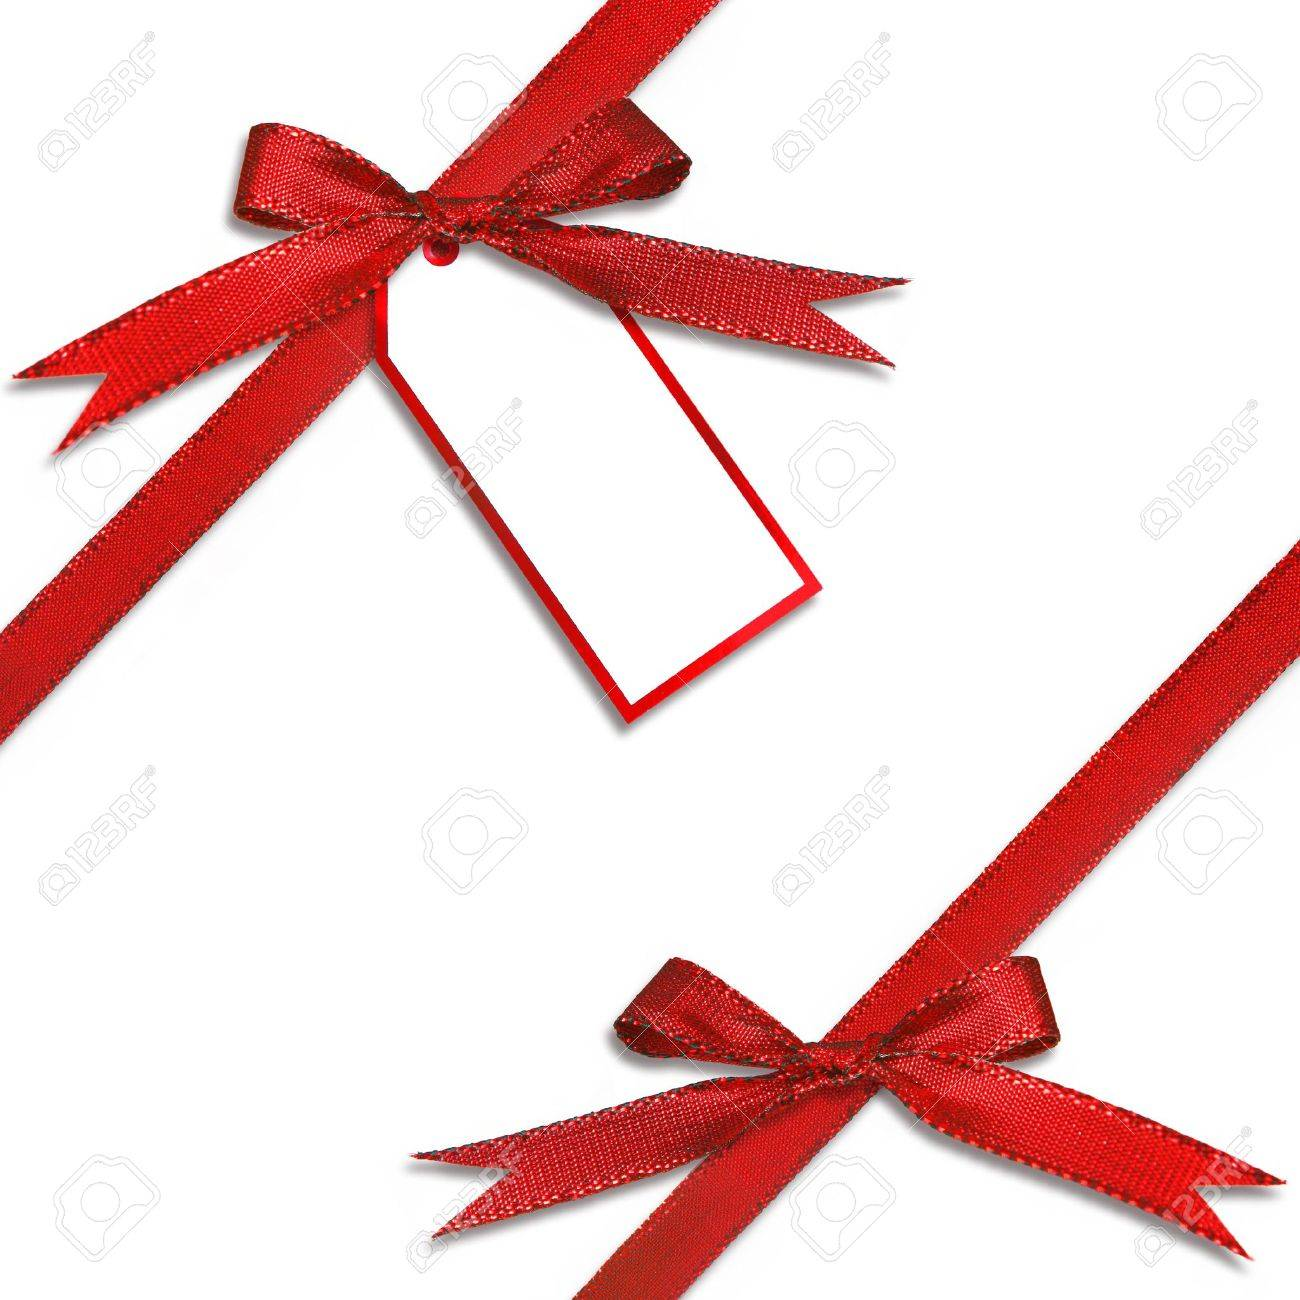 Christmas Gift Tag.Christmas Gift Tag Hanging From A Present With Tied Red Bow